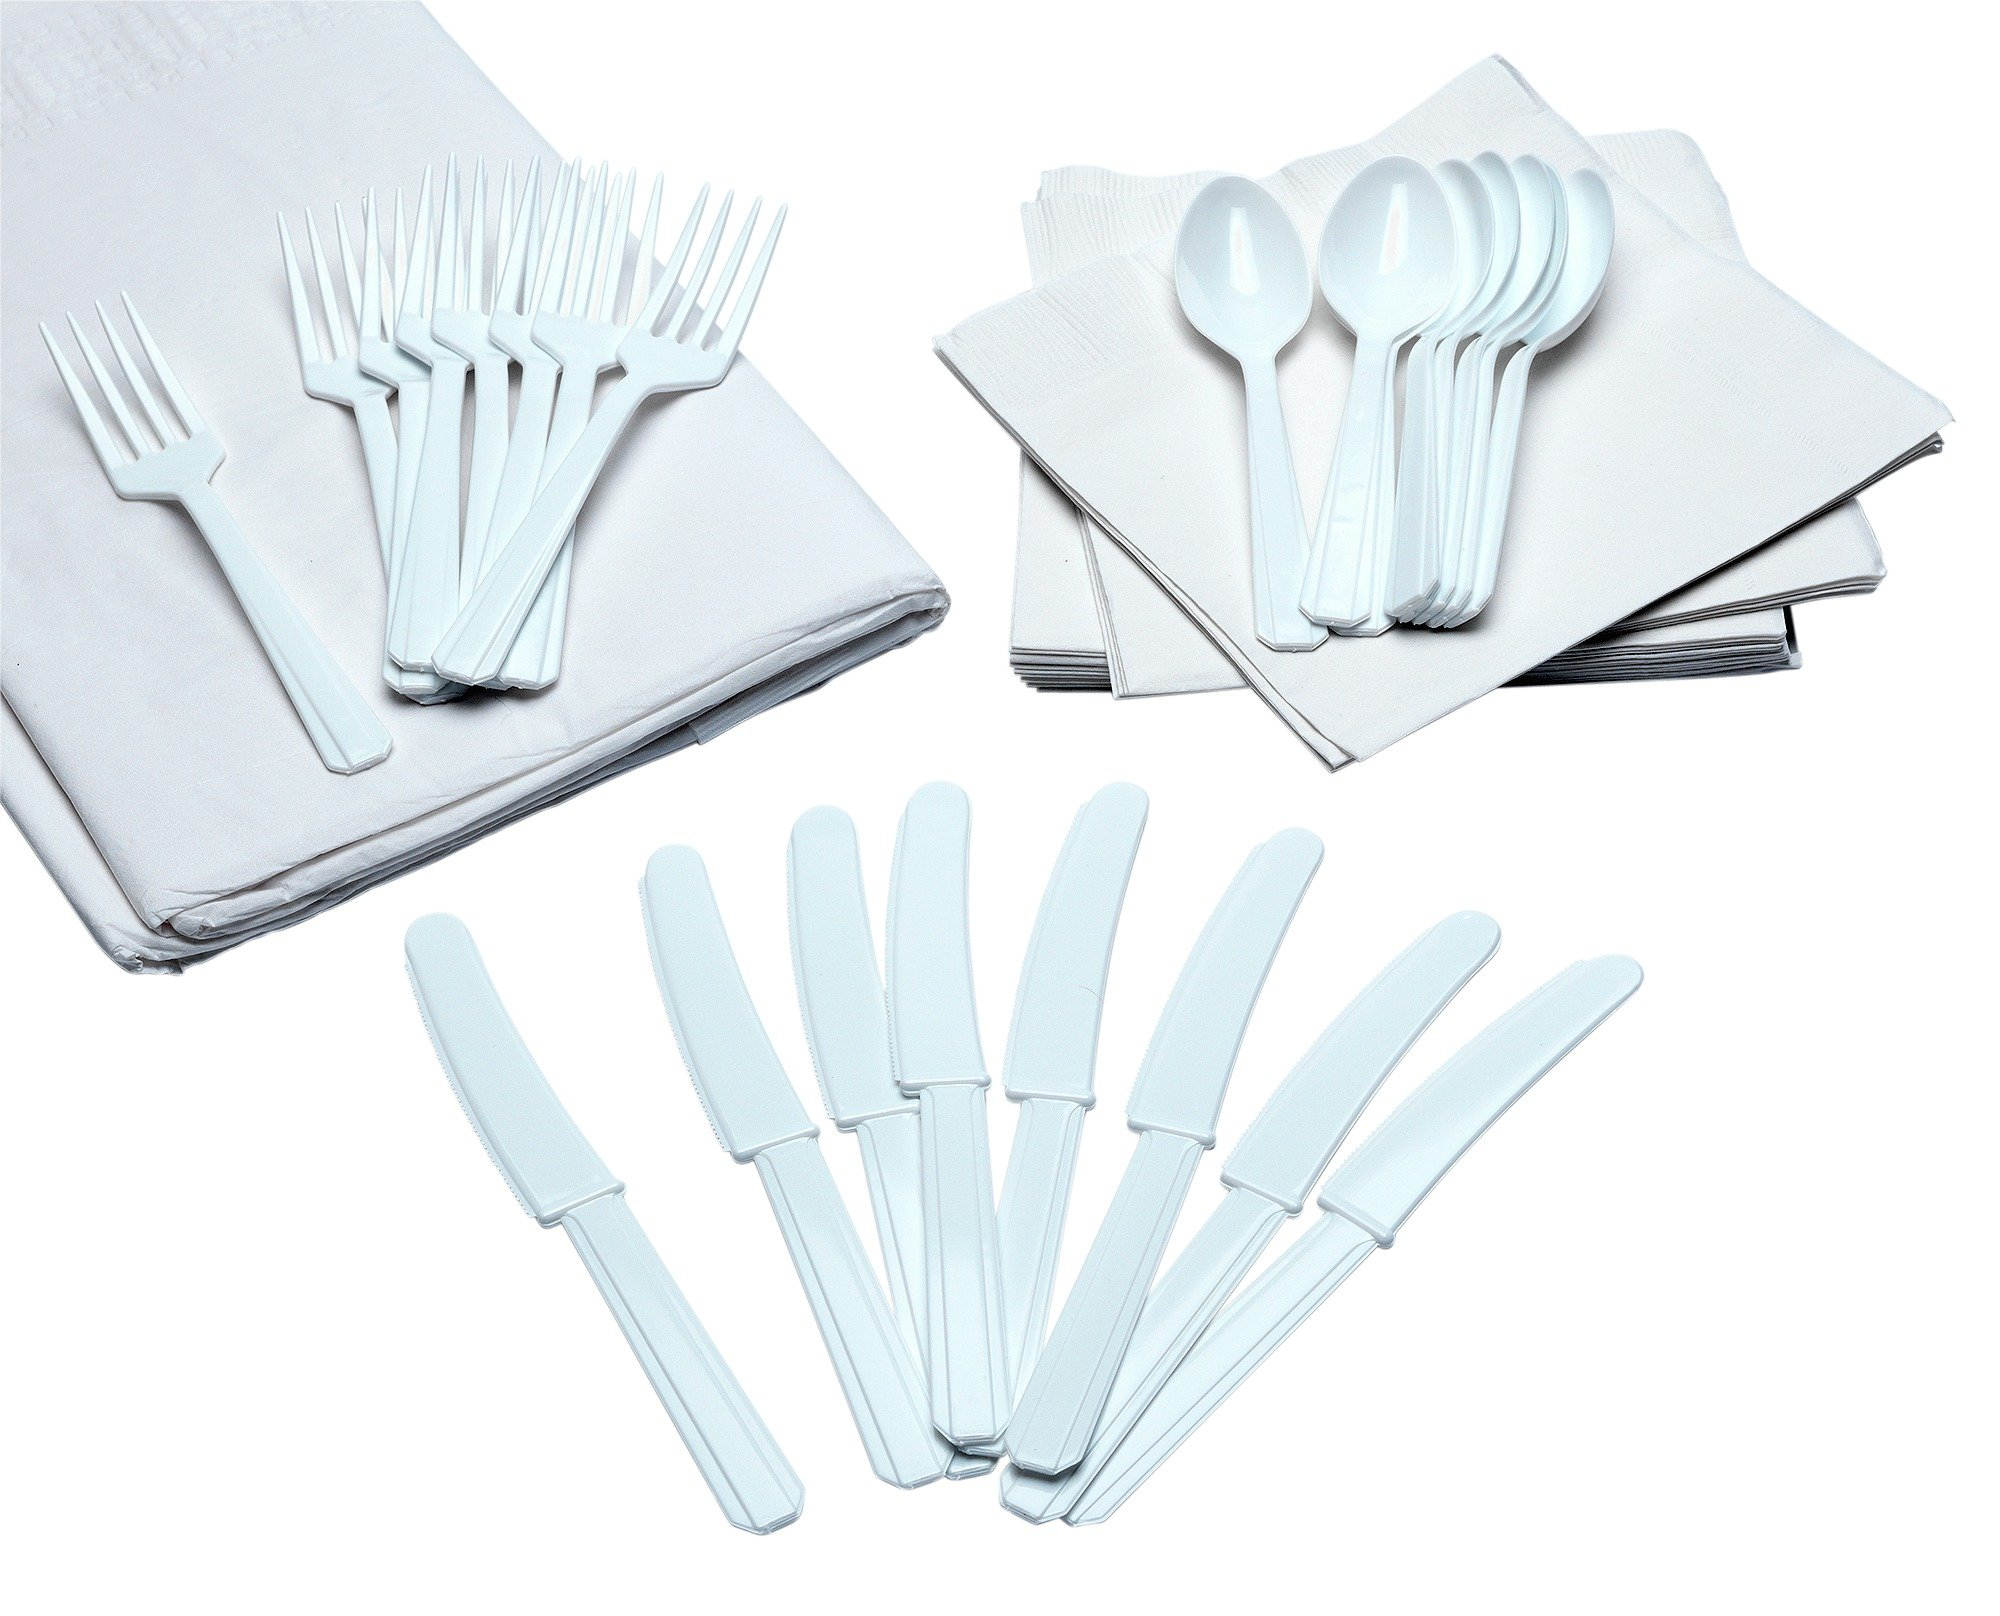 Image of Cutlery, Napkins and Tablecloth Set - White